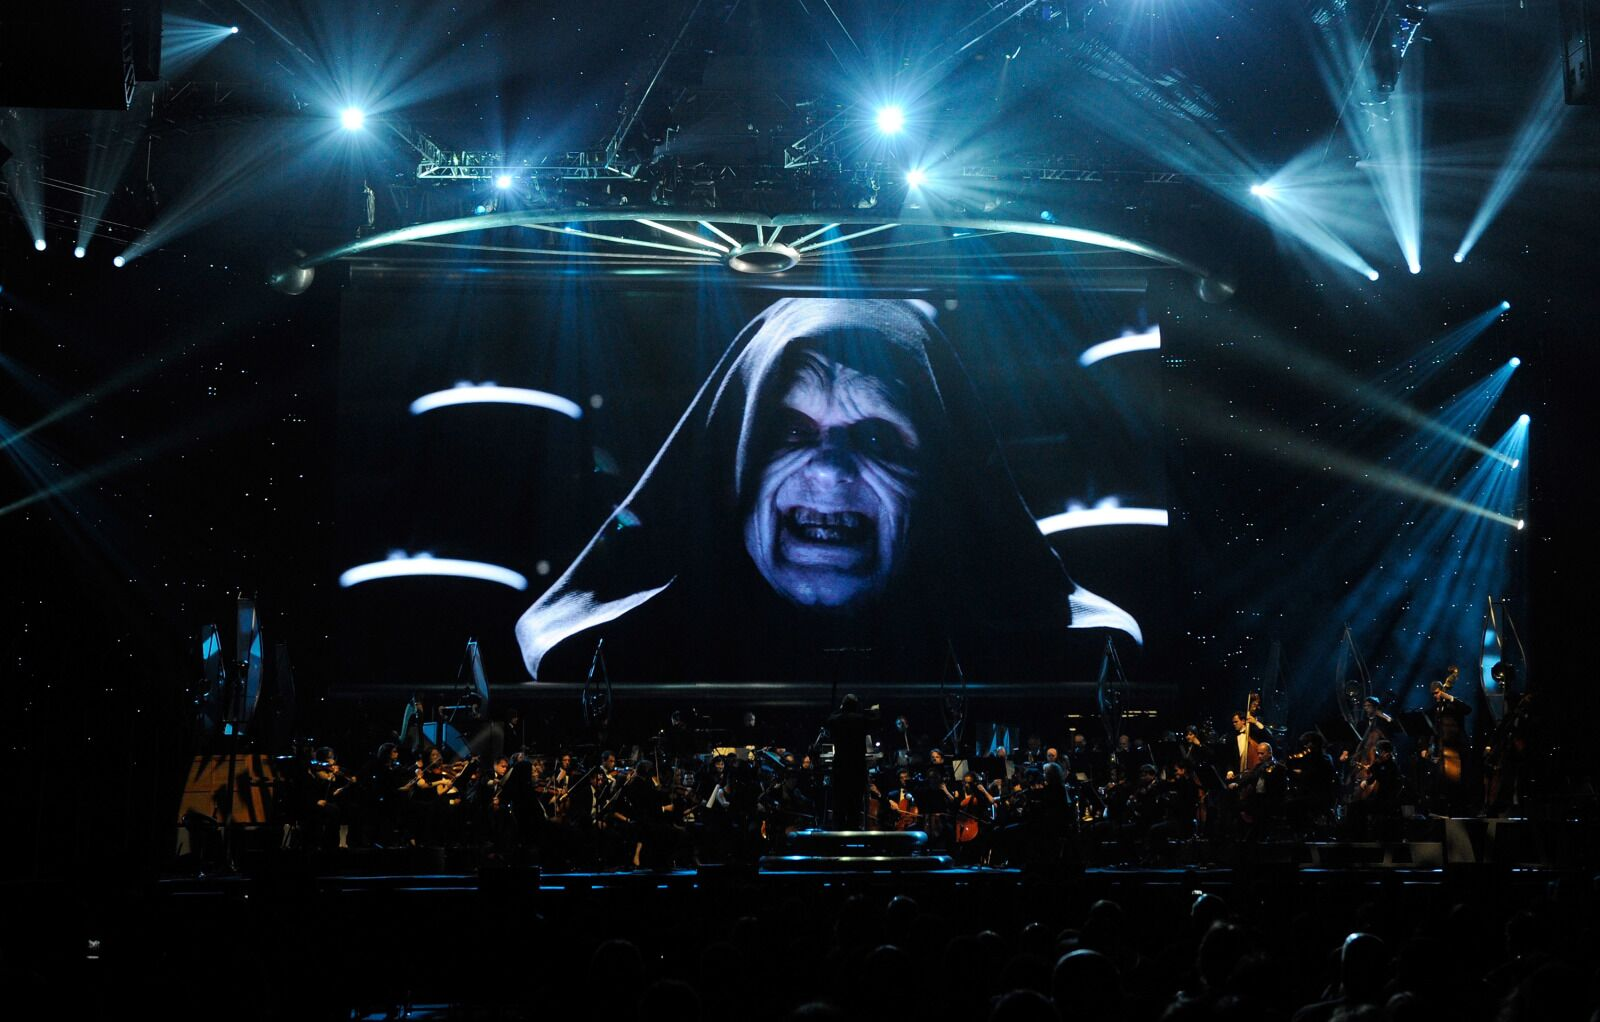 4 ways Emperor Palpatine could appear in Star Wars Episode IX